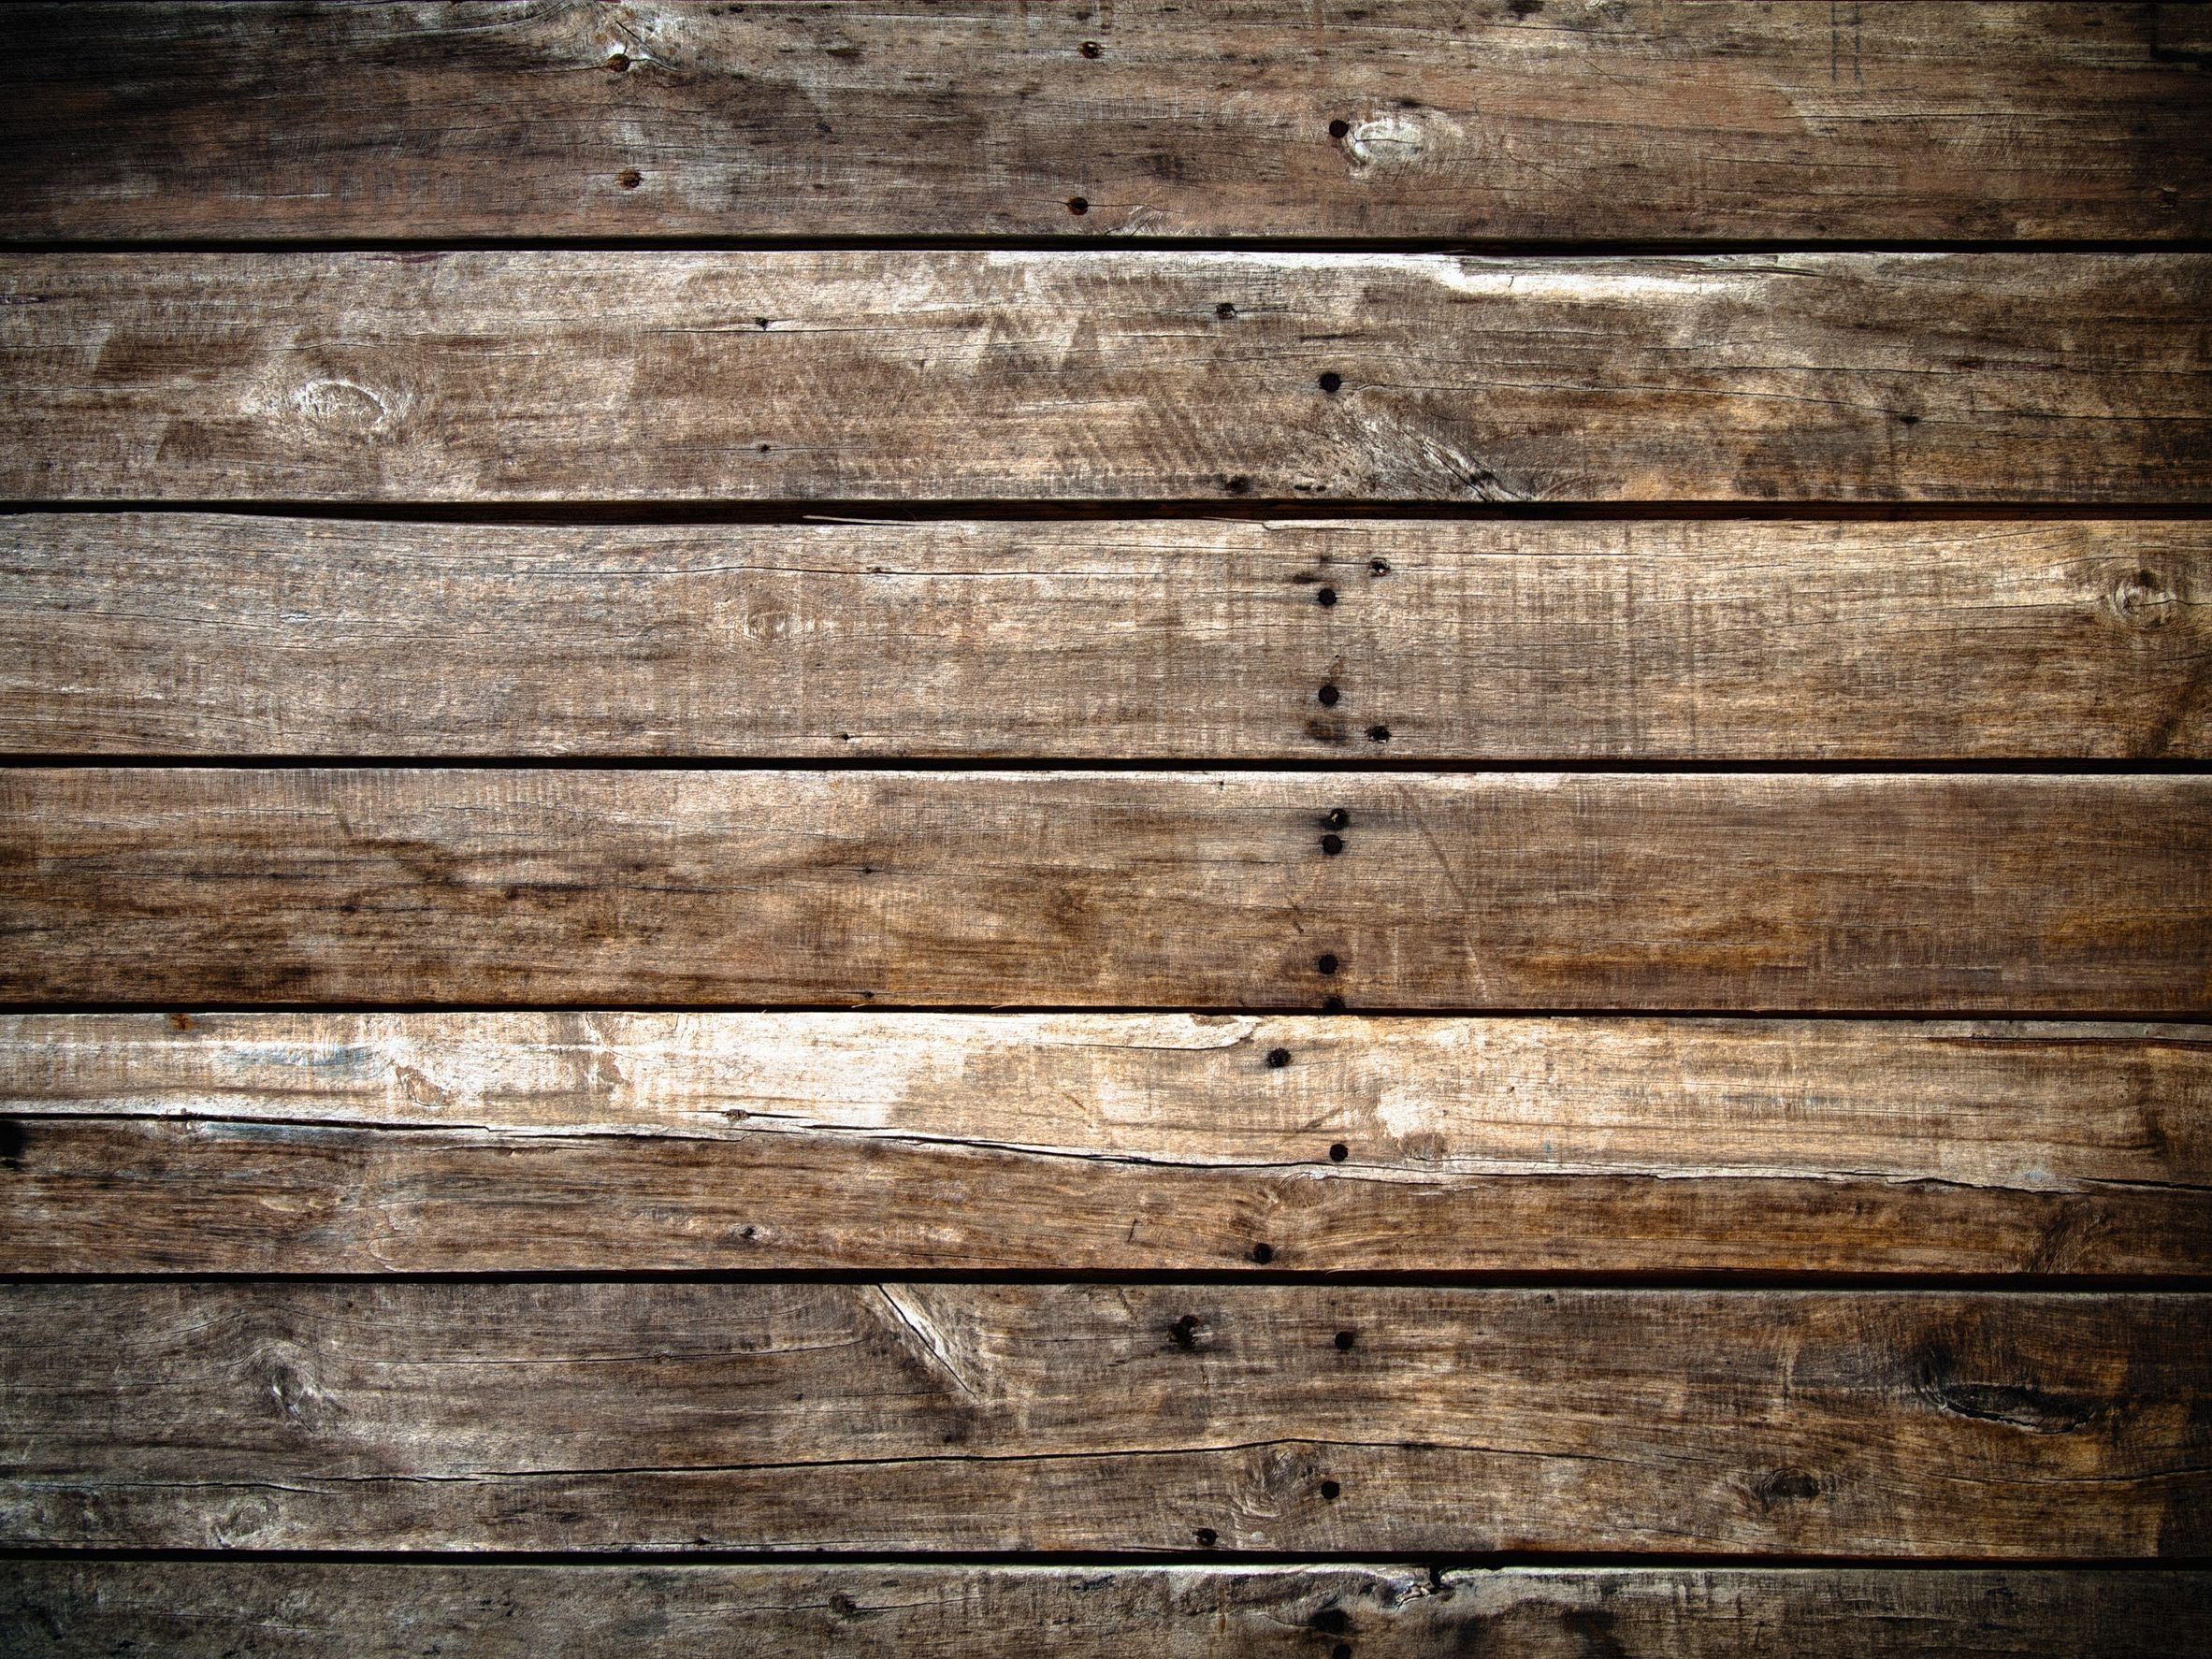 wild-and-western-old-wood-background-123rf-7860465_l.jpg 2 ...